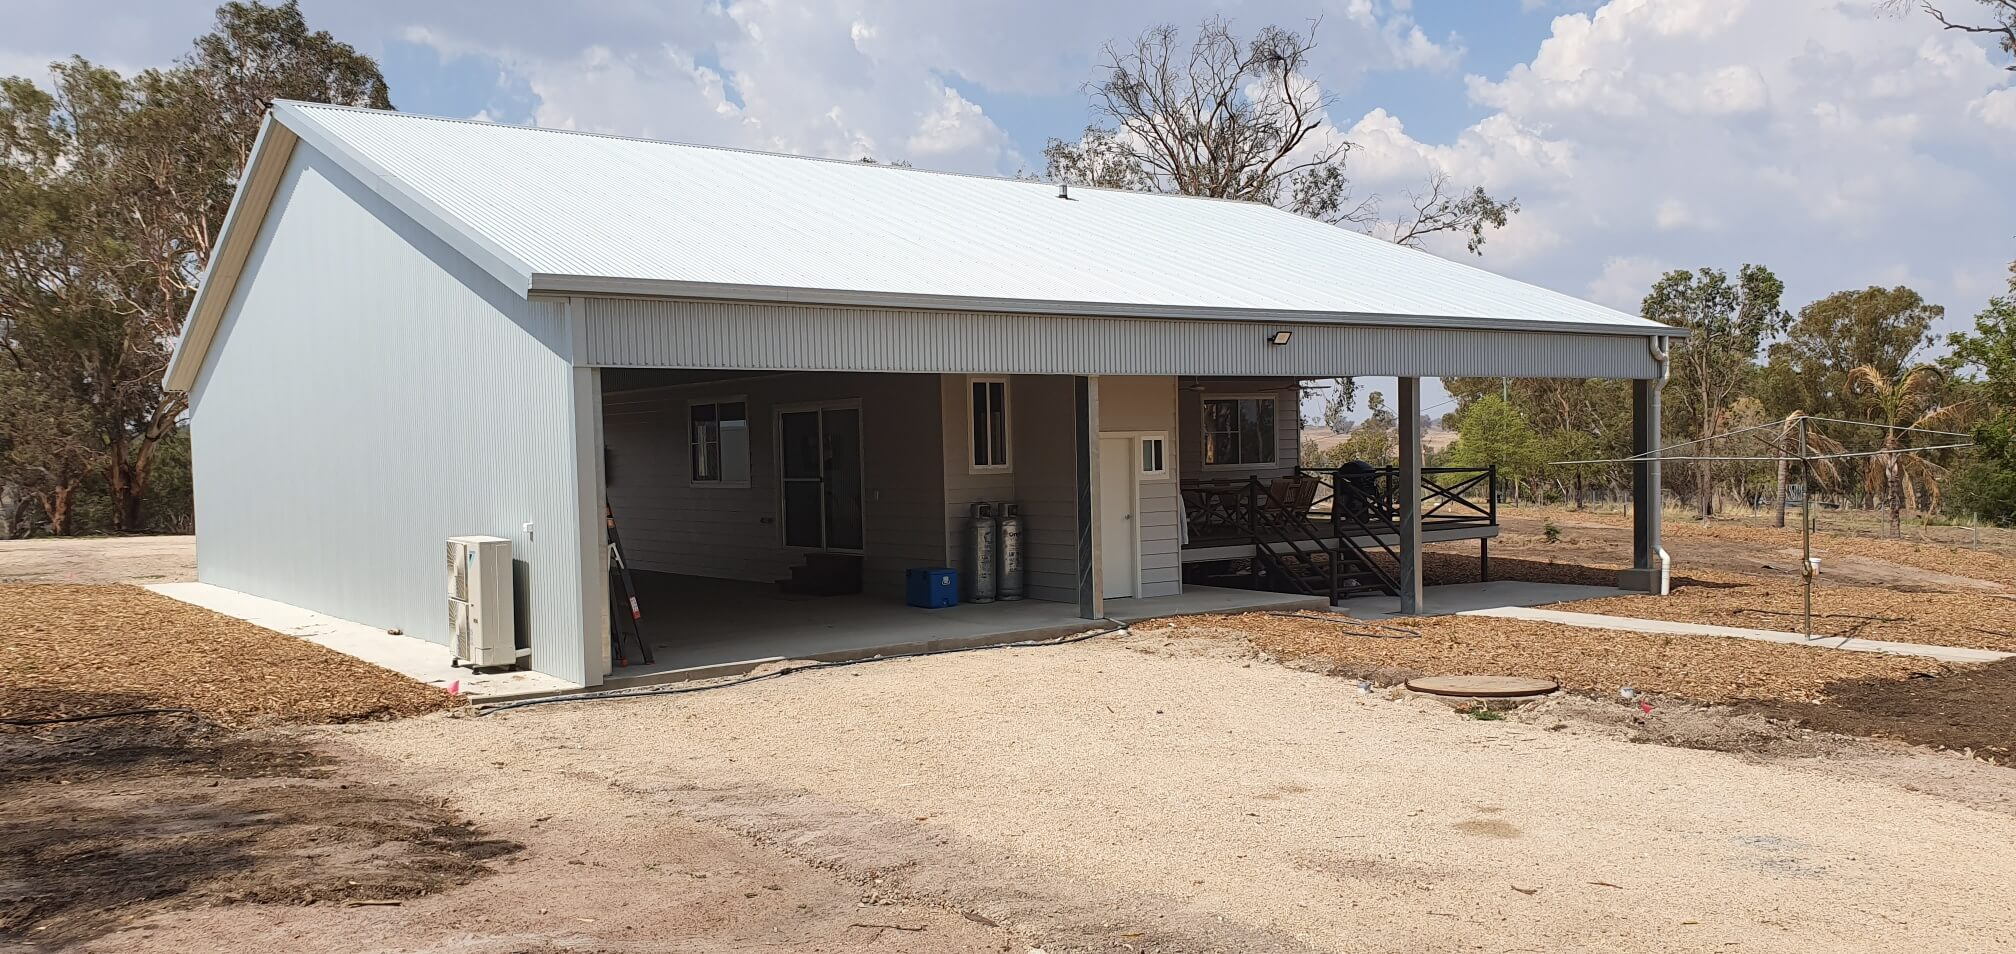 ABC Sheds structural steel shed in Inverell